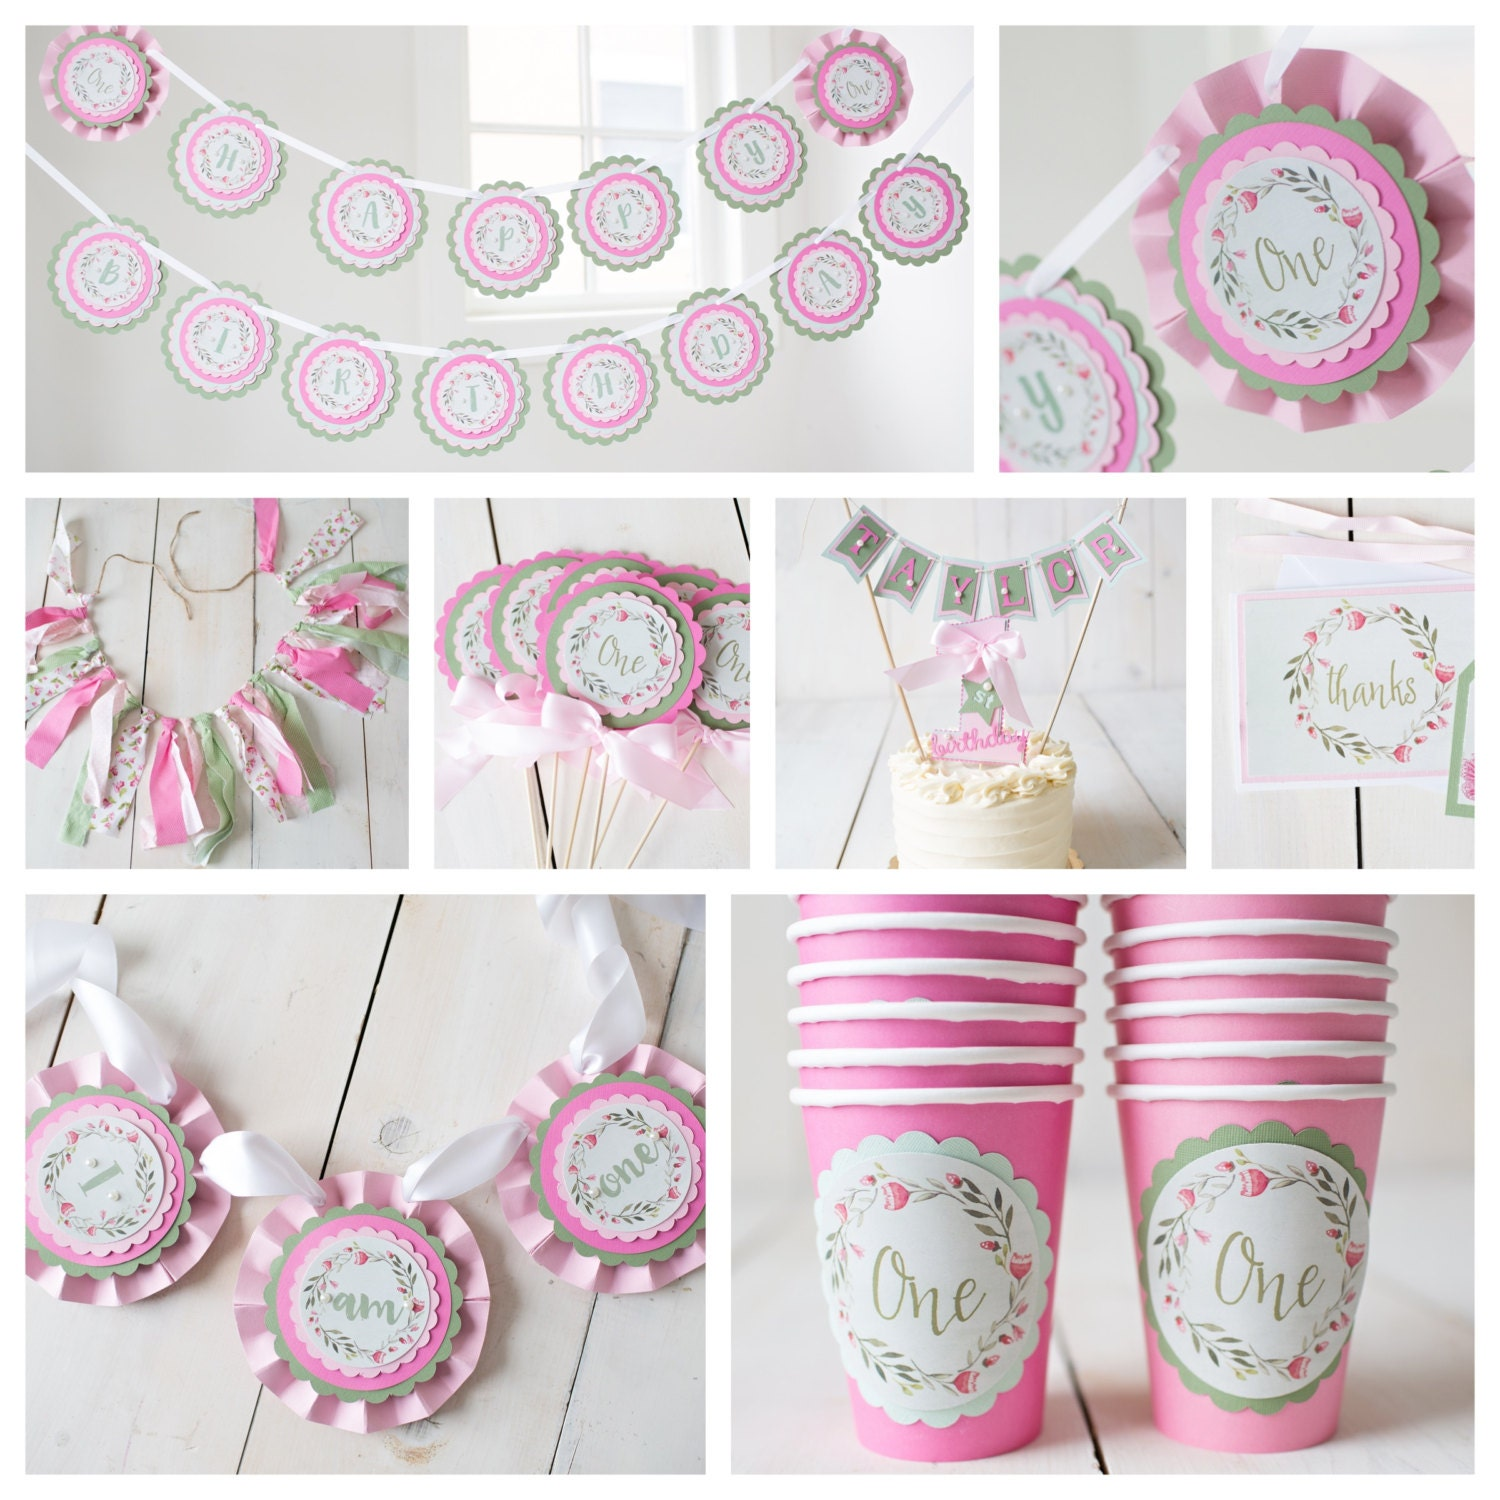 Girl / 1st Birthday Party Decorations. Boutique 7 Piece Party